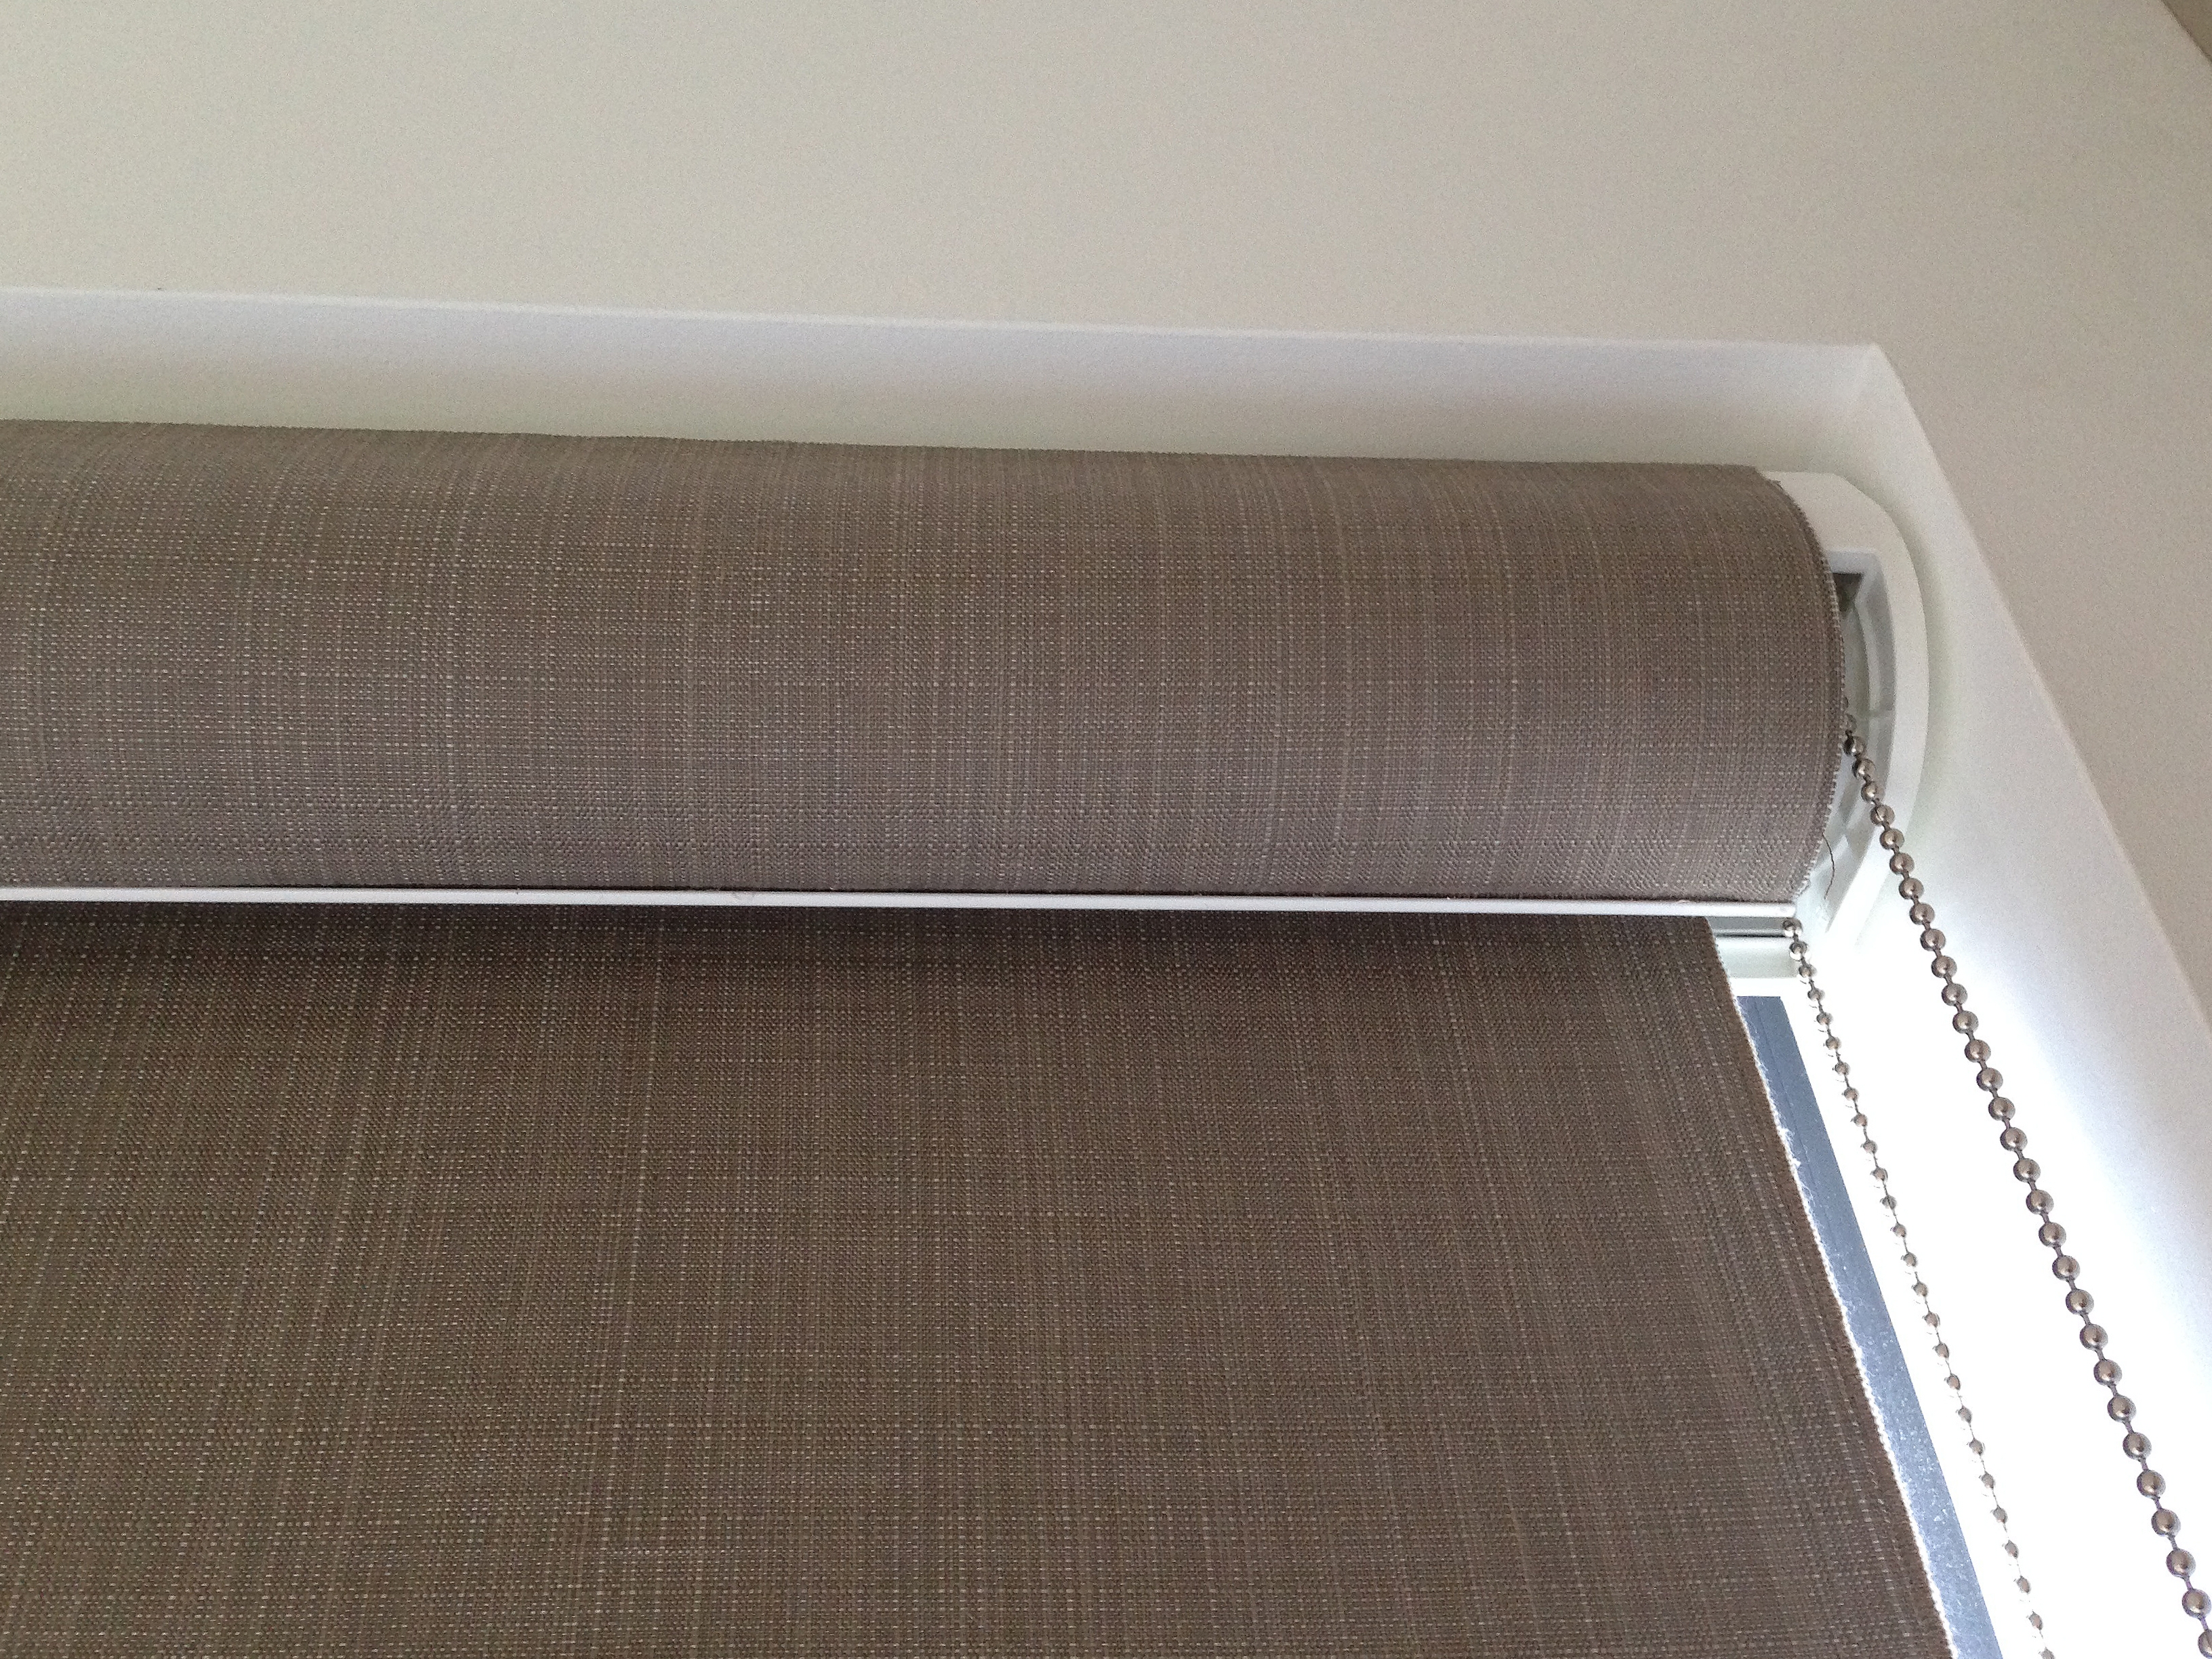 Roller Blinds All Roman Blinds Sunscreen Roller Blinds Category In Roller Fabric Blinds (Image 12 of 15)